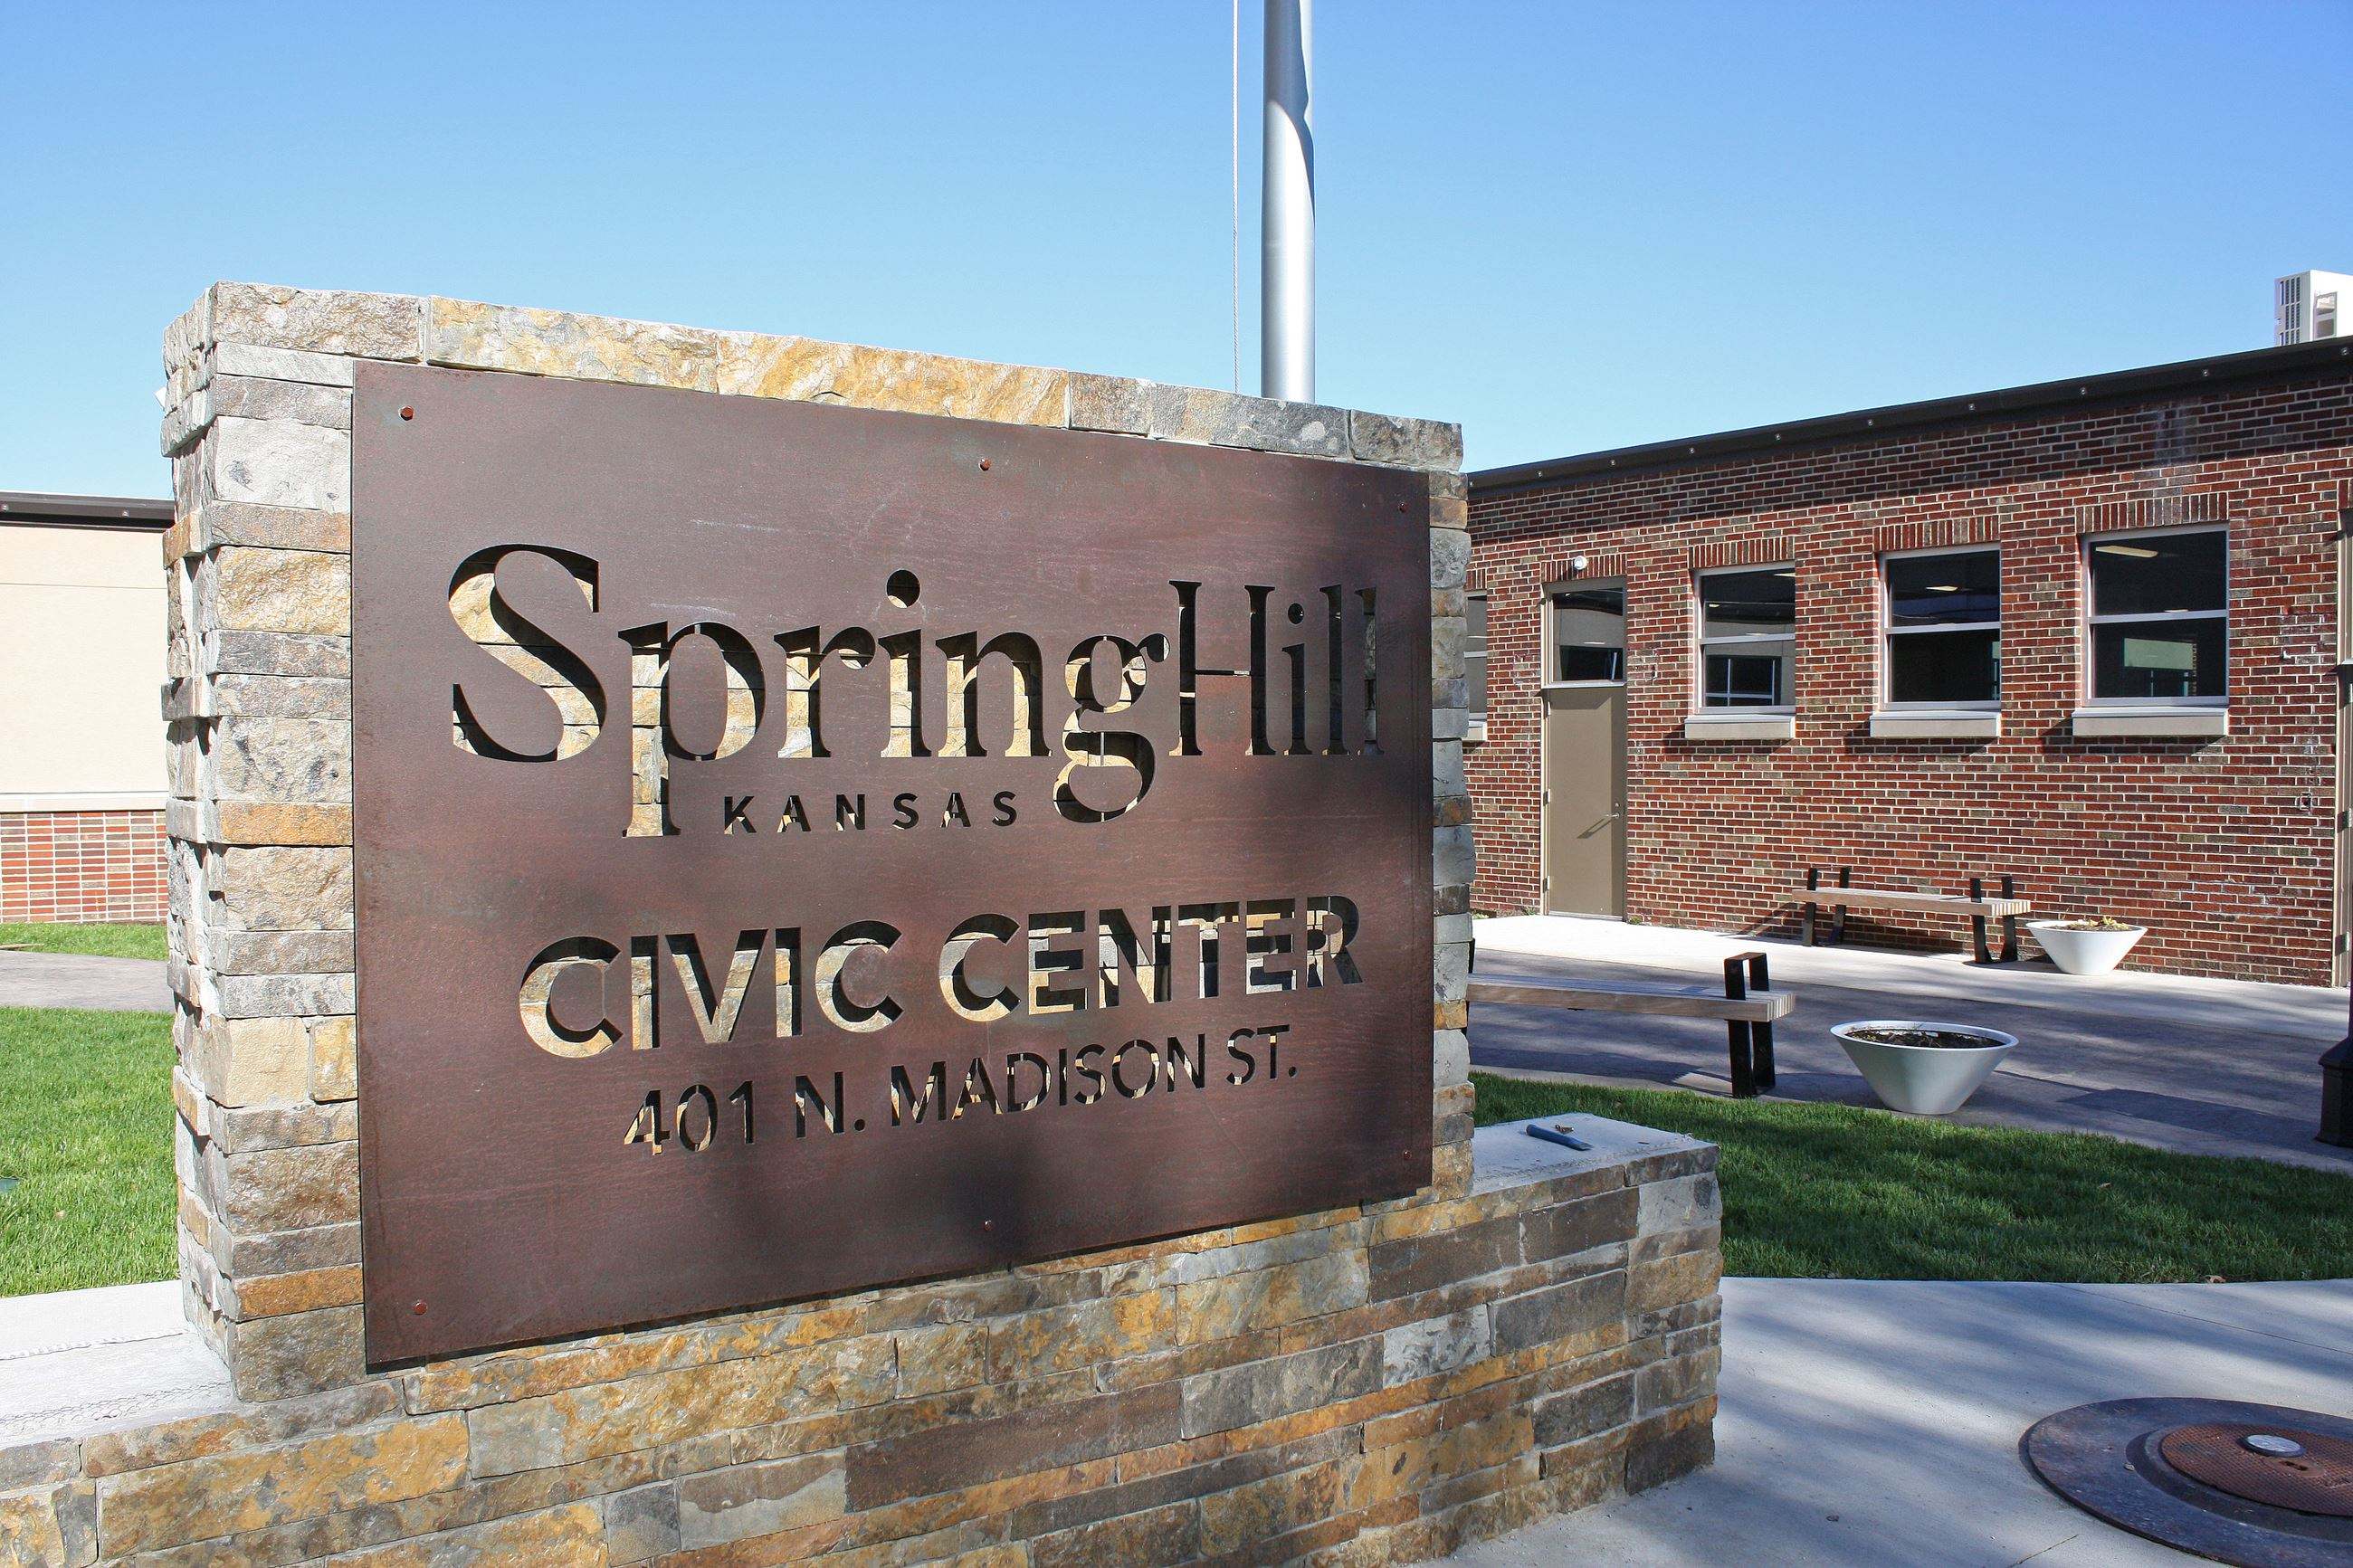 An outdoor image of the Spring Hill Civic Center sign and courtyard.